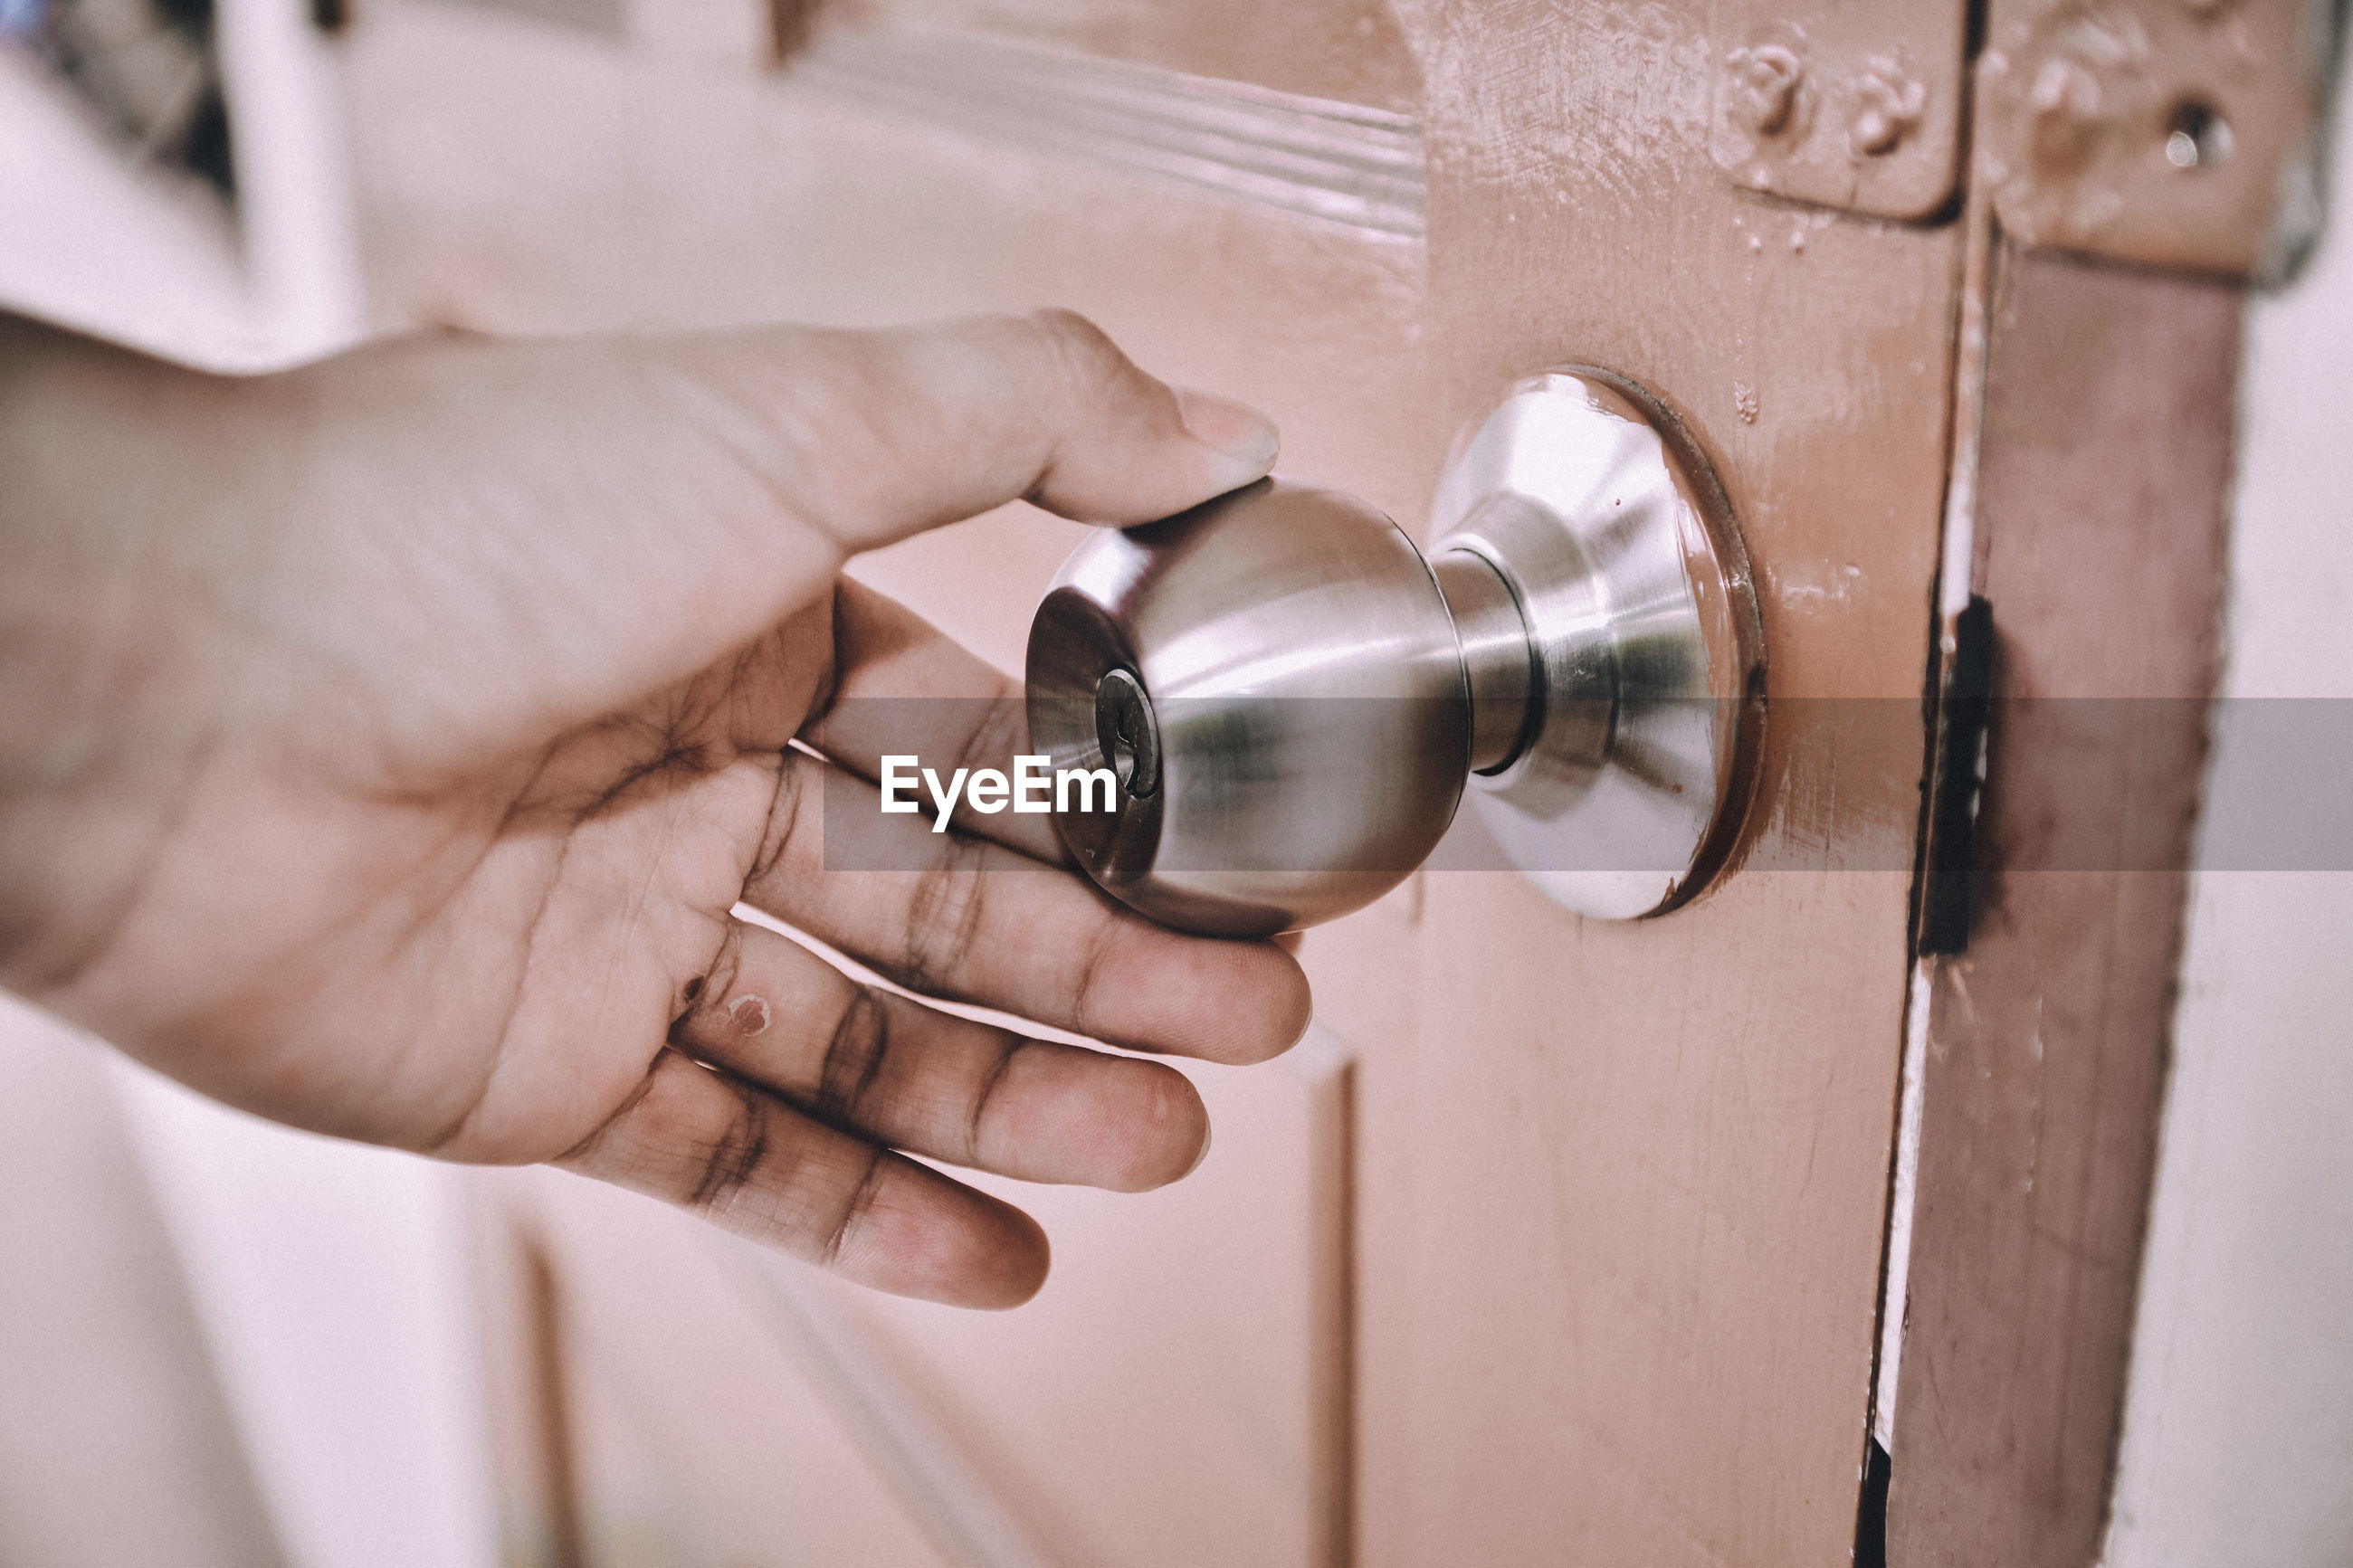 Close-up of hand holding door knob